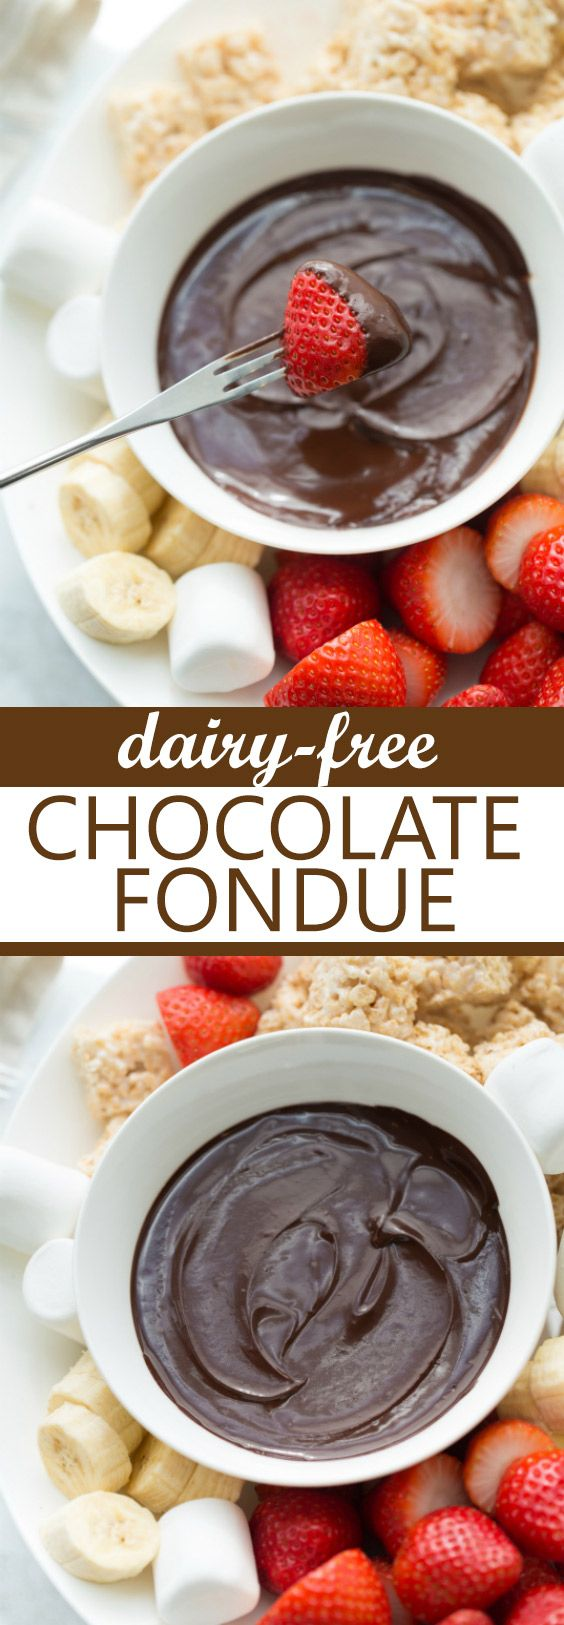 Dairy-Free Chocolate Fondue! Rich, decadent and perfect for all the dipping! #glutenfree #chocolatefondue #glutenfreevalentinesday #dairyfreetreats #glutenfreetreats #fondue #chocolate #chocolatevalentinesrecipes #valentinesdesserts #glutenfreedessets